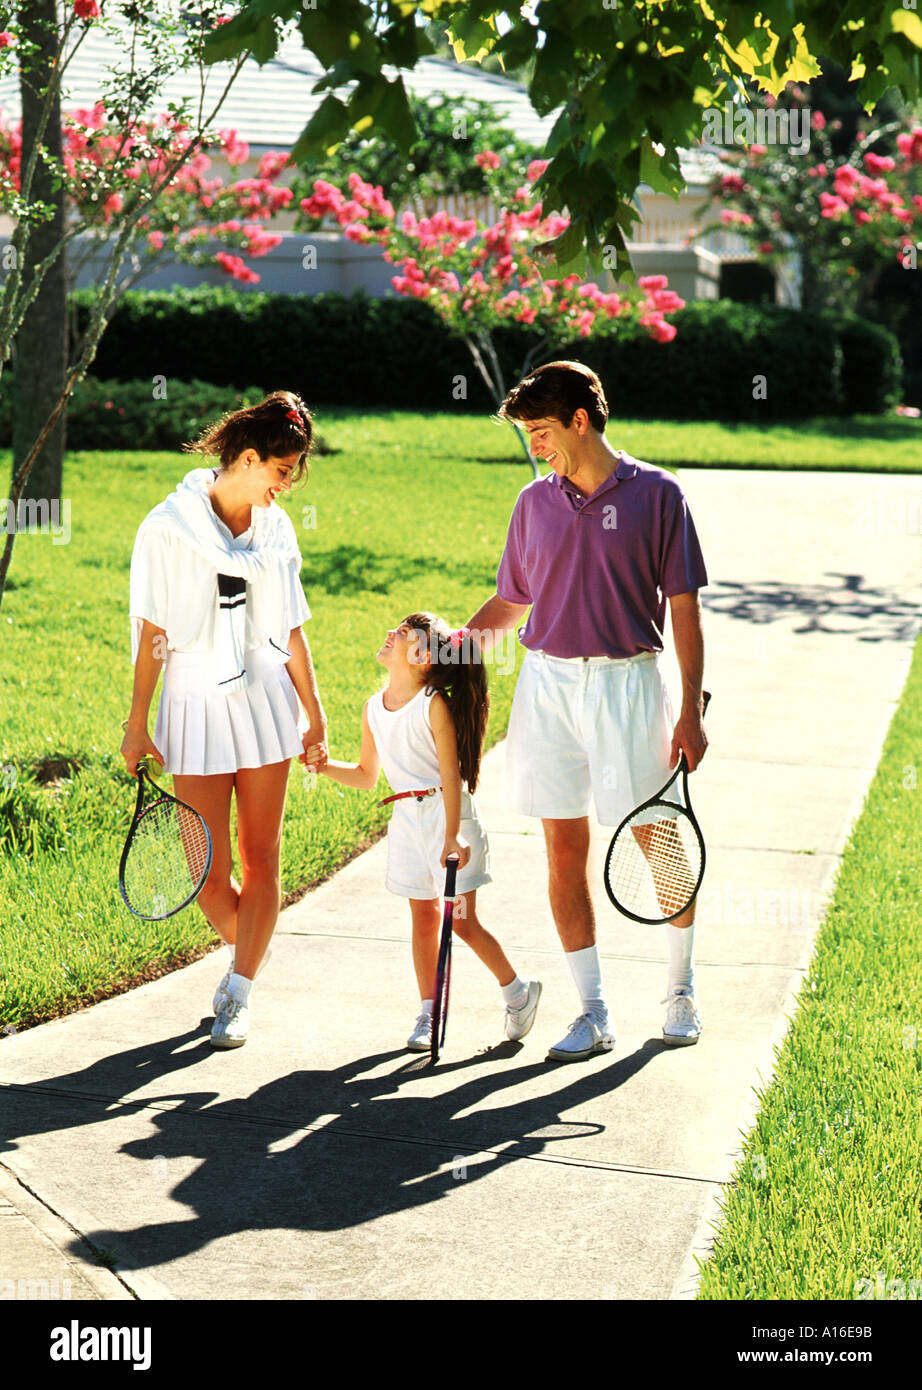 Affluent Hispanic Family Walking Together After Playing Tennis